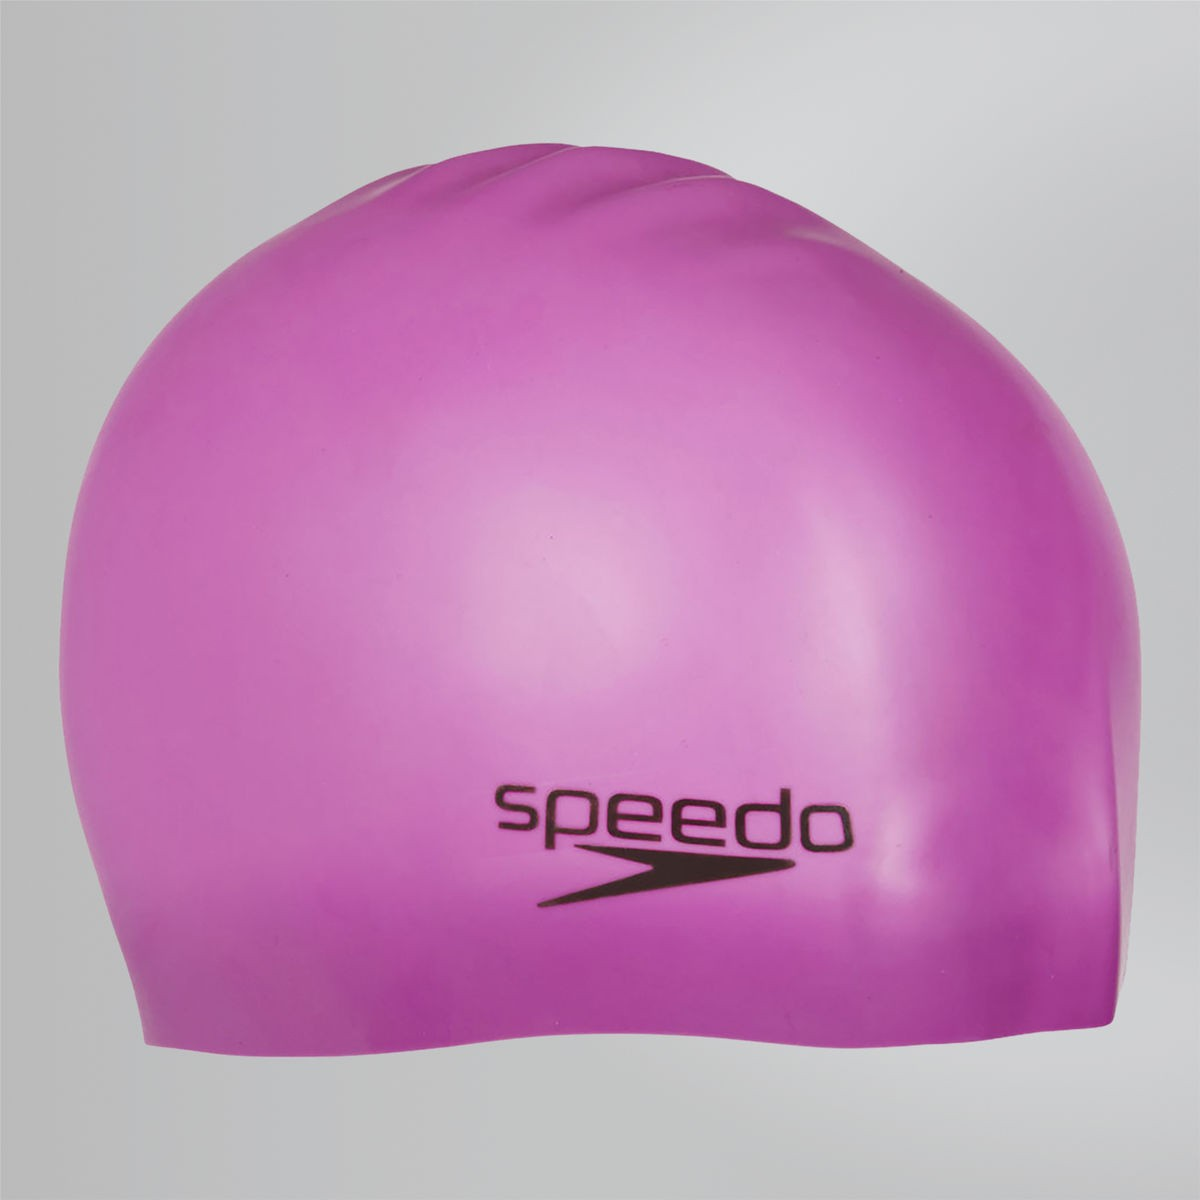 Speedo Plain Moulded silicone cap roze/paars